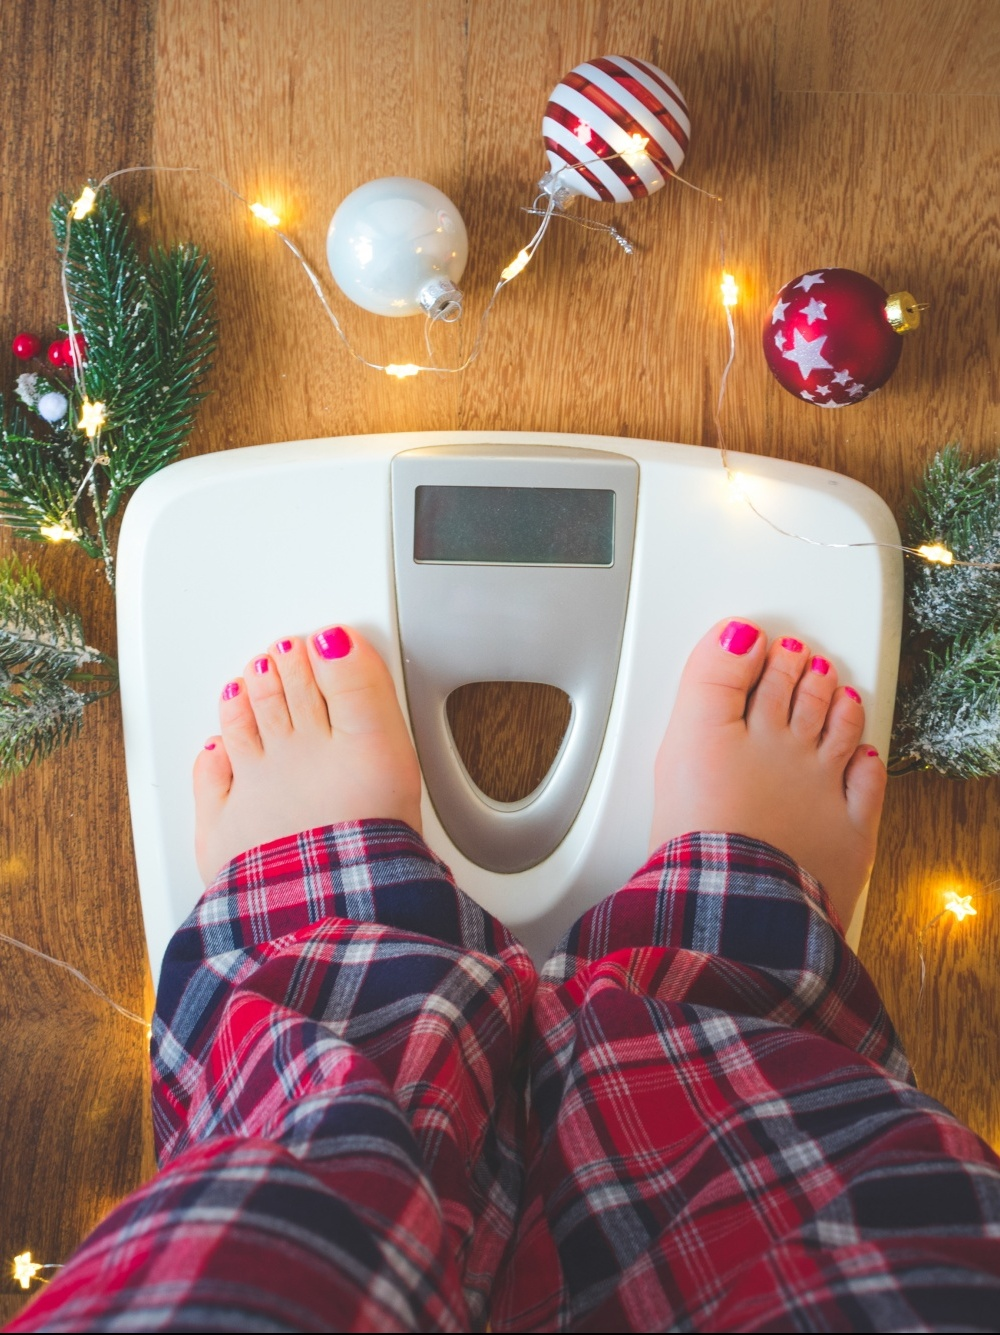 Woman's legs in plaid pj pants standing on bathroom scale surrounded by Christmas ornaments